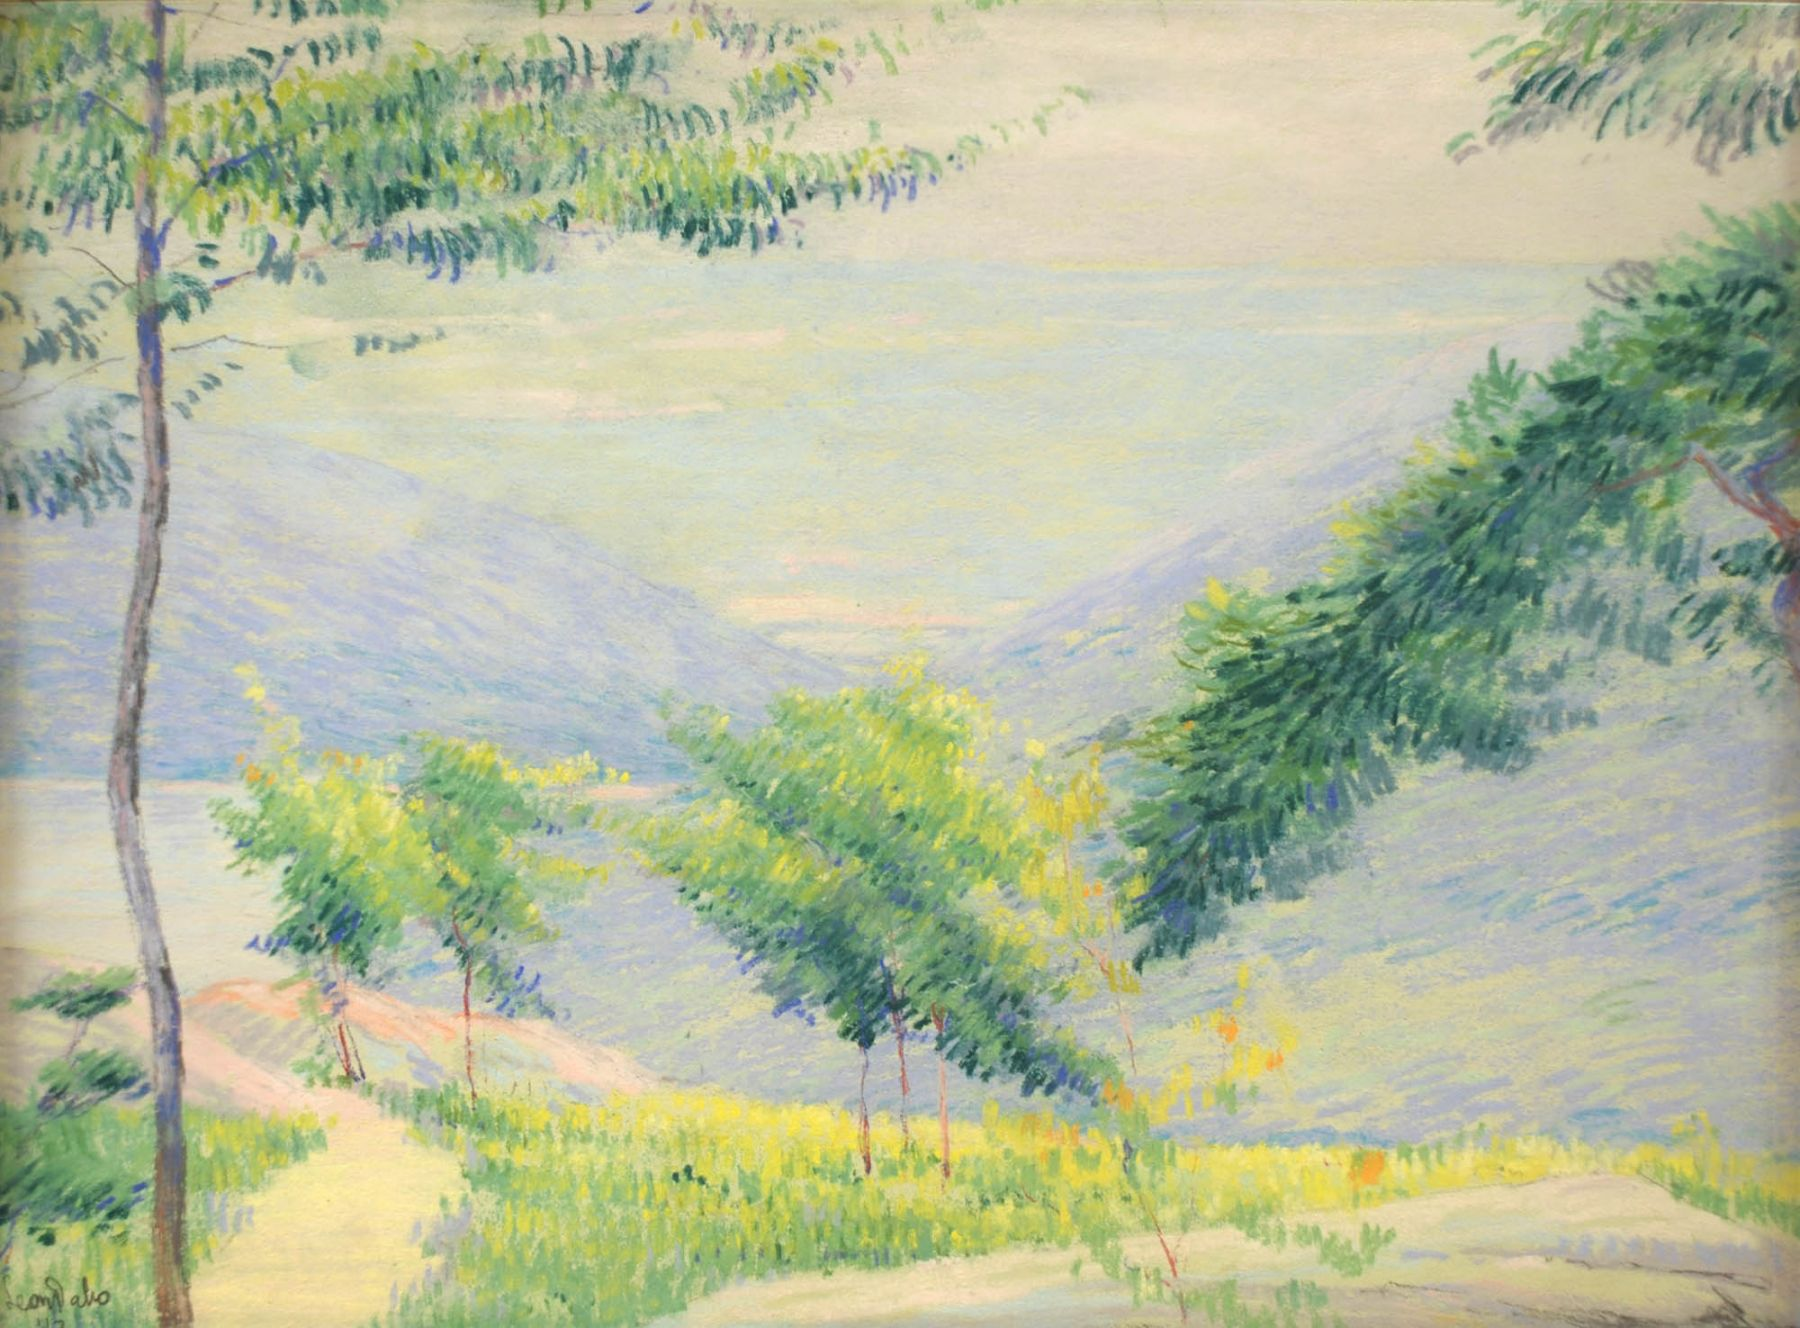 Leon Dabo, Valley View (possibly Road to Storm King from 4th Pastellists), 1913